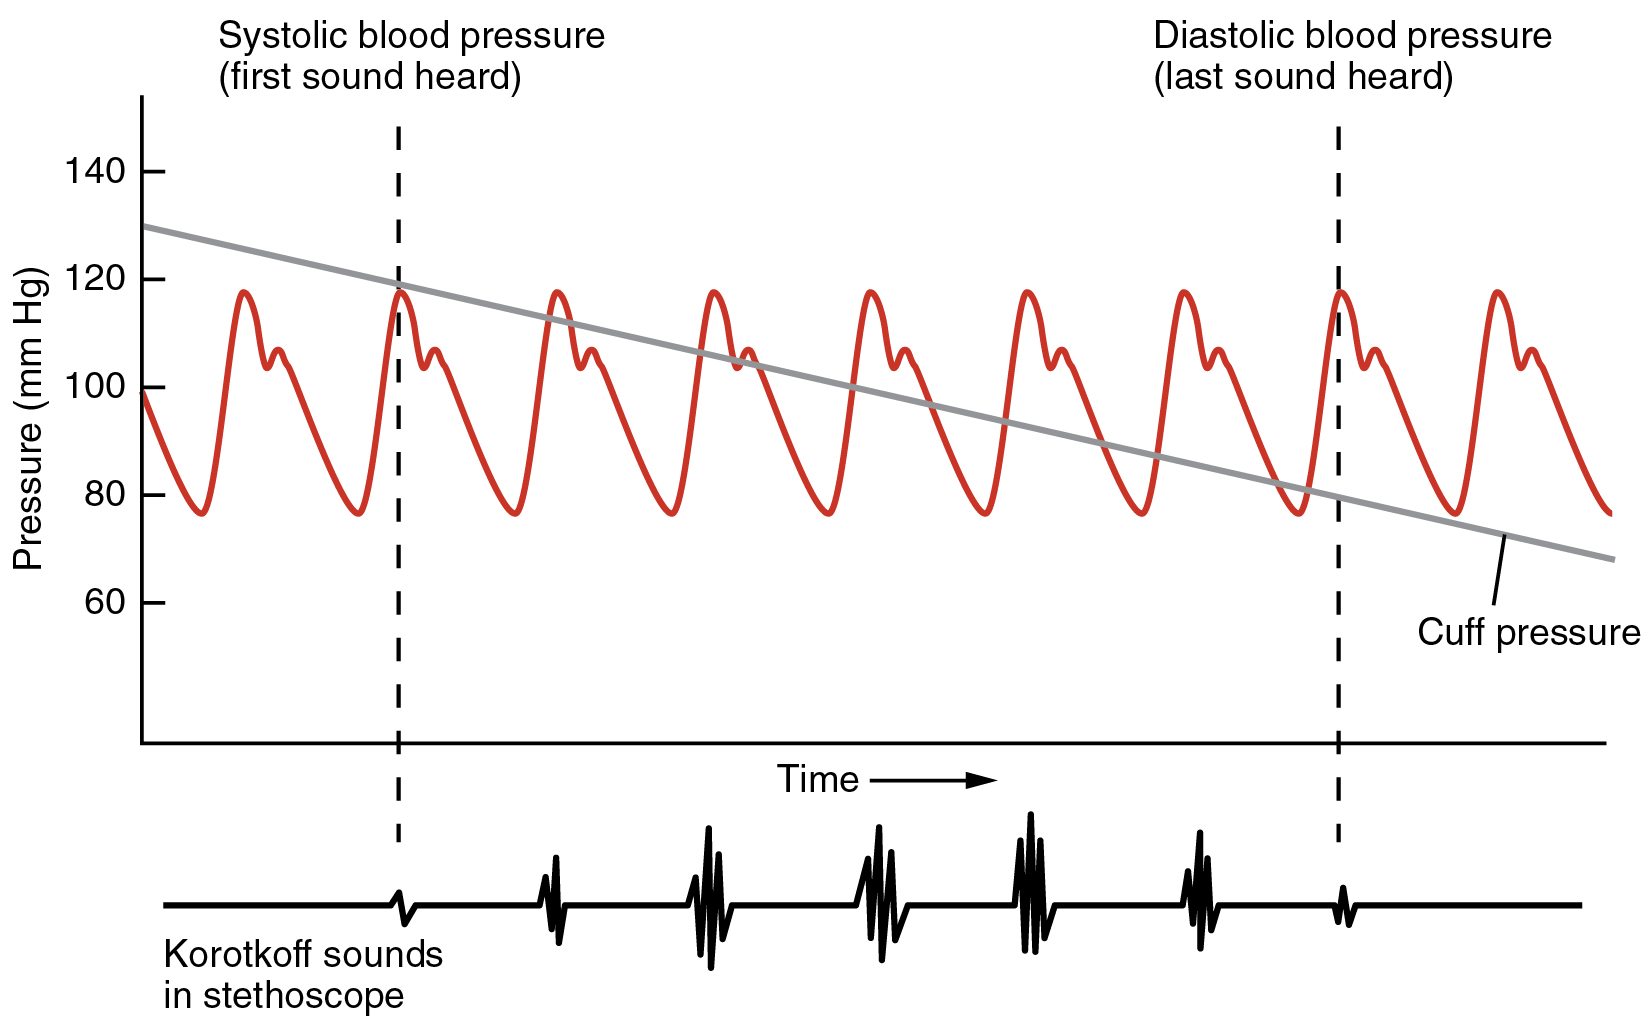 This image shows blood pressure as a function of time.